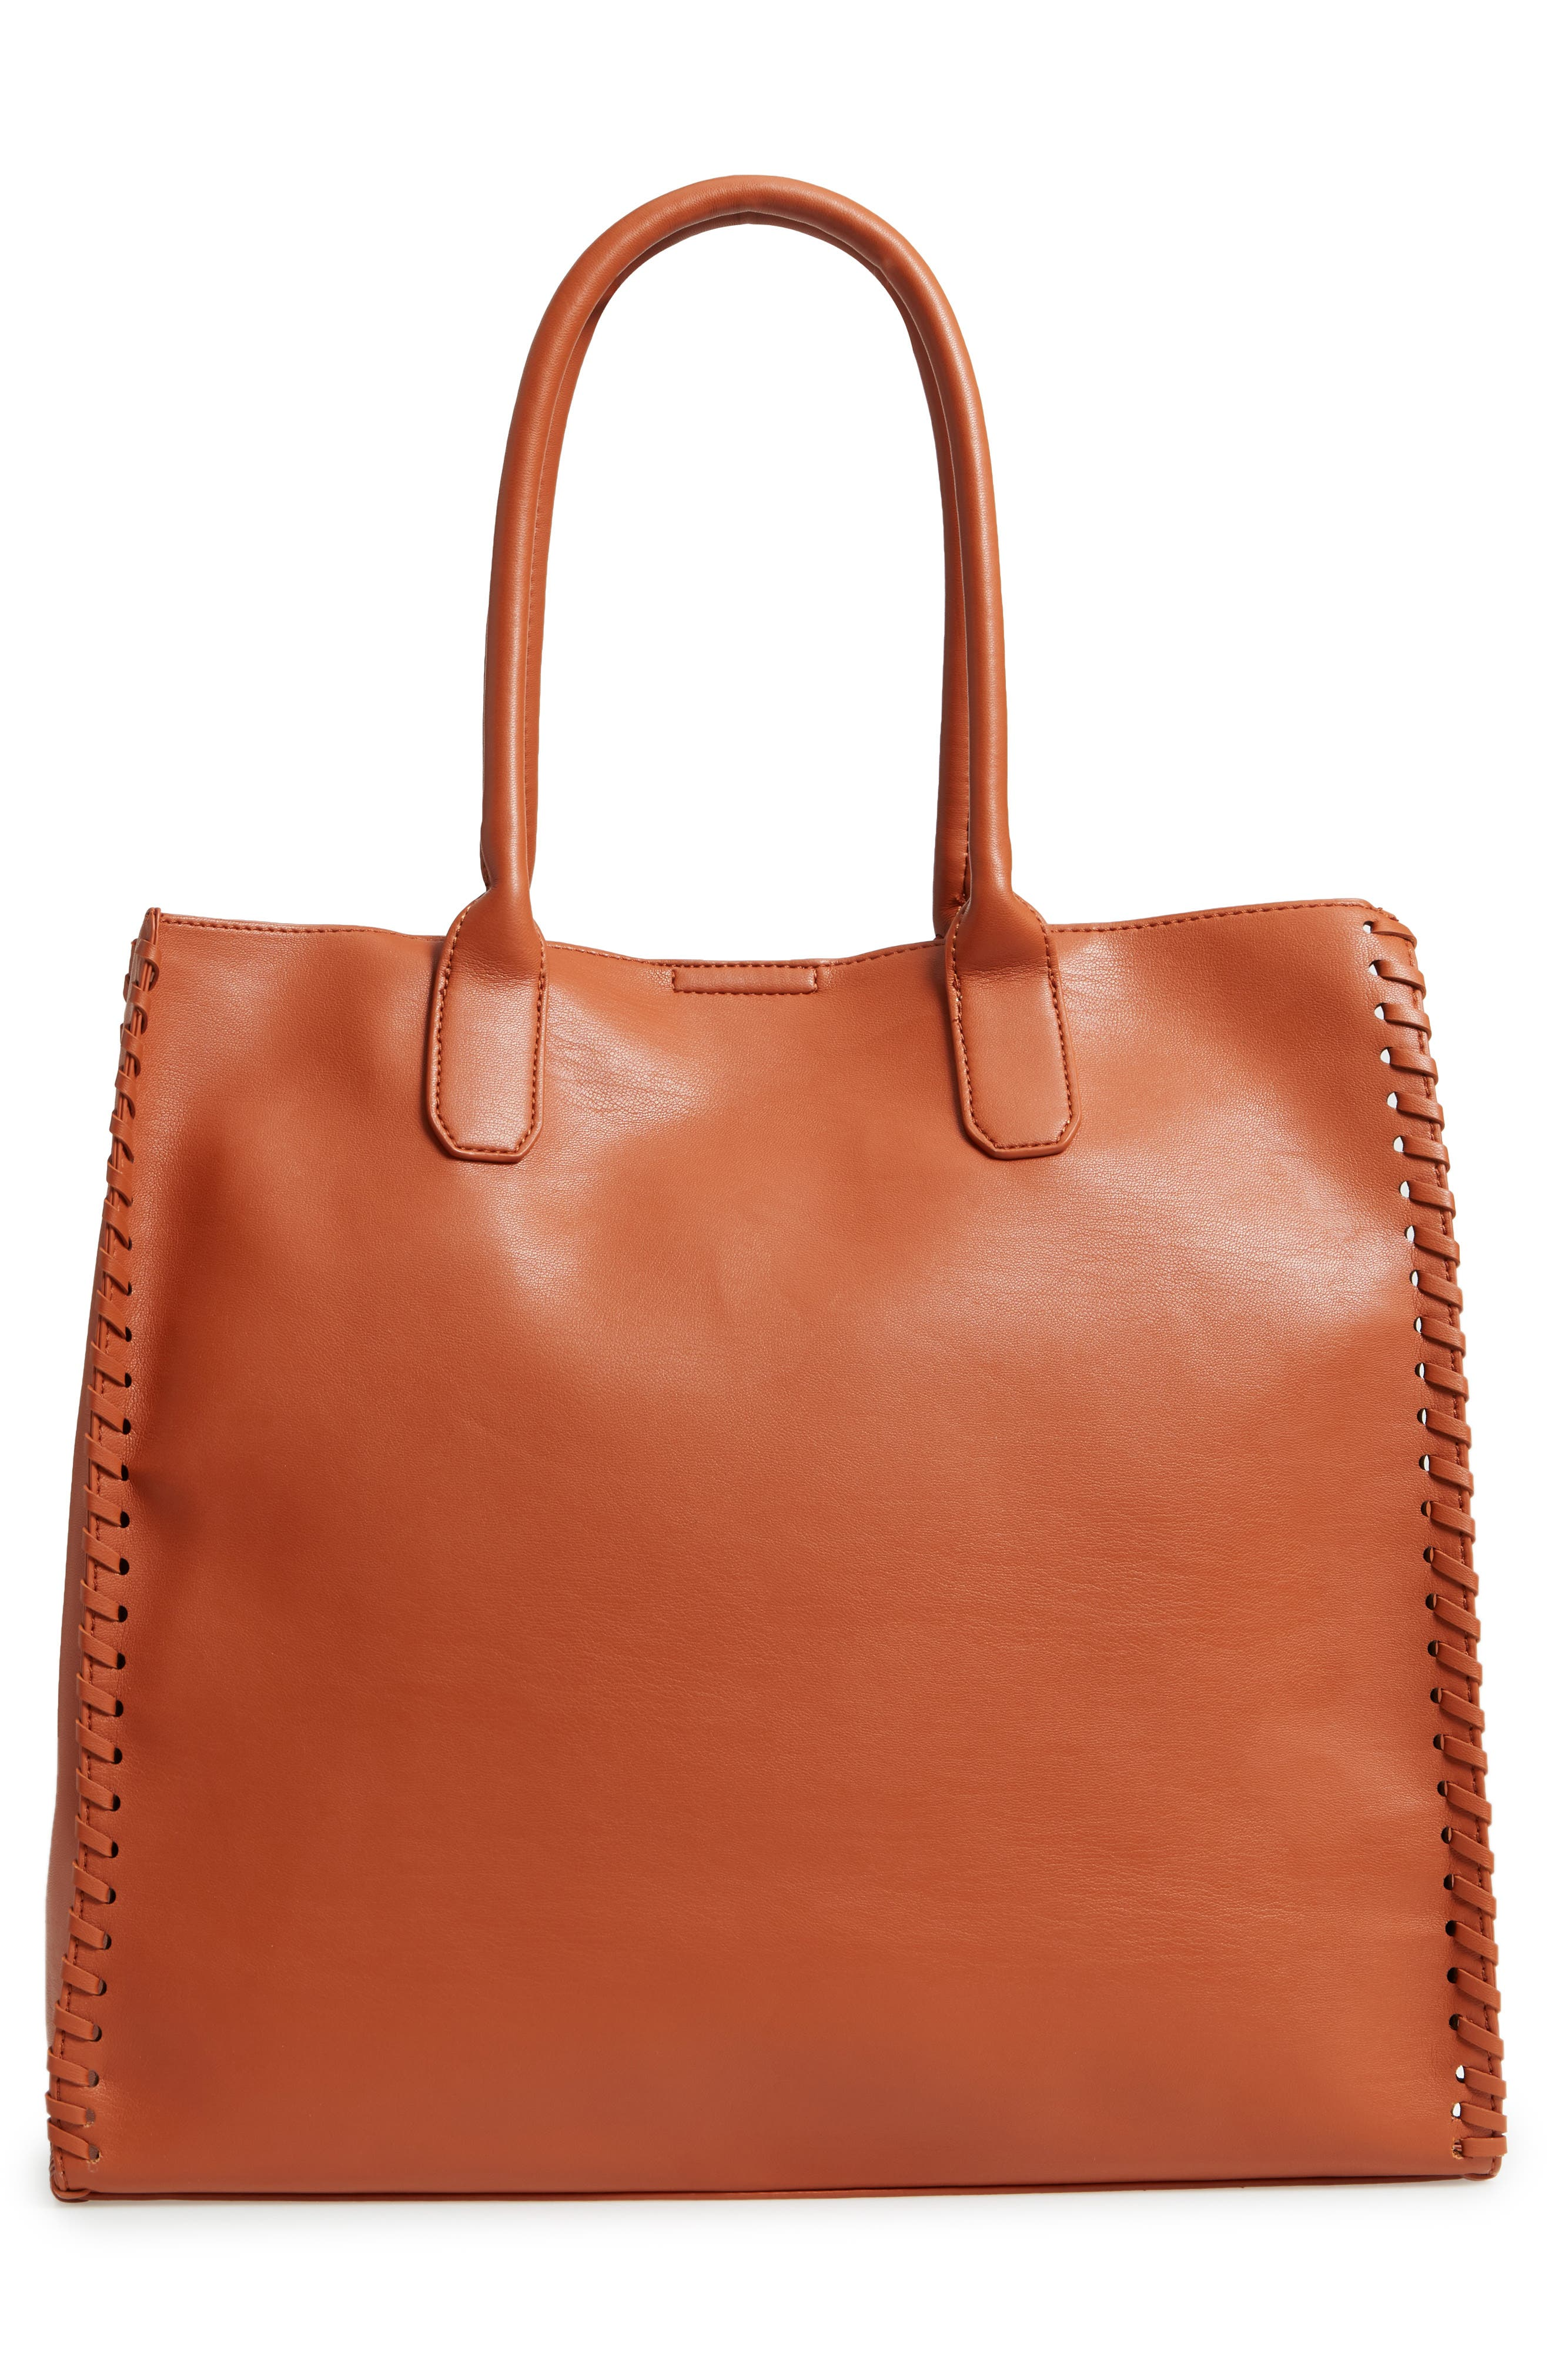 Cadence Faux Leather Whipstitch Tote,                             Alternate thumbnail 3, color,                             Cognac